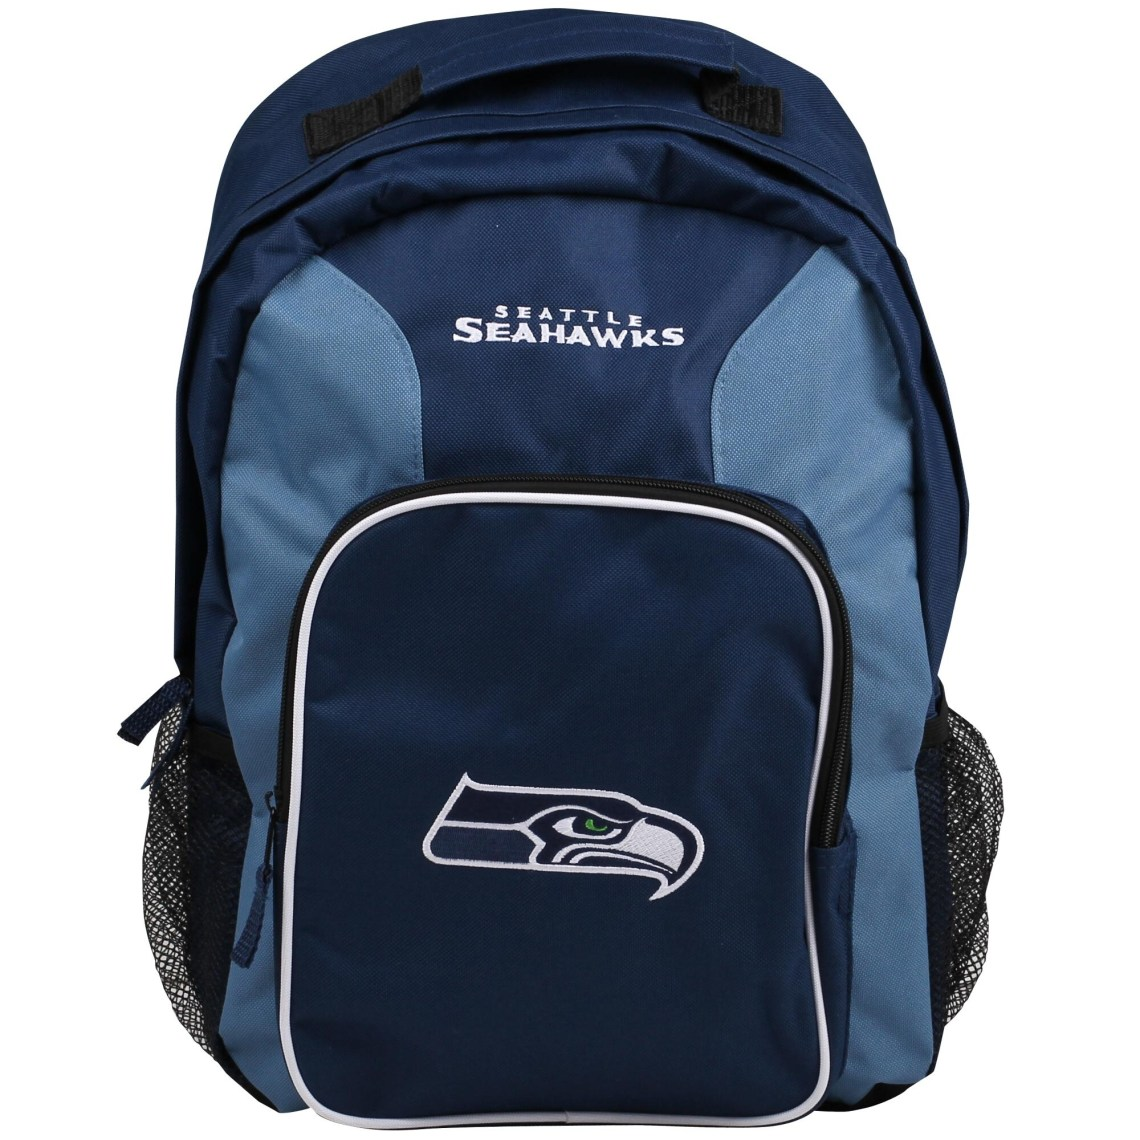 Seattle Seahawks College Navy/Light Blue Southpaw Backpack